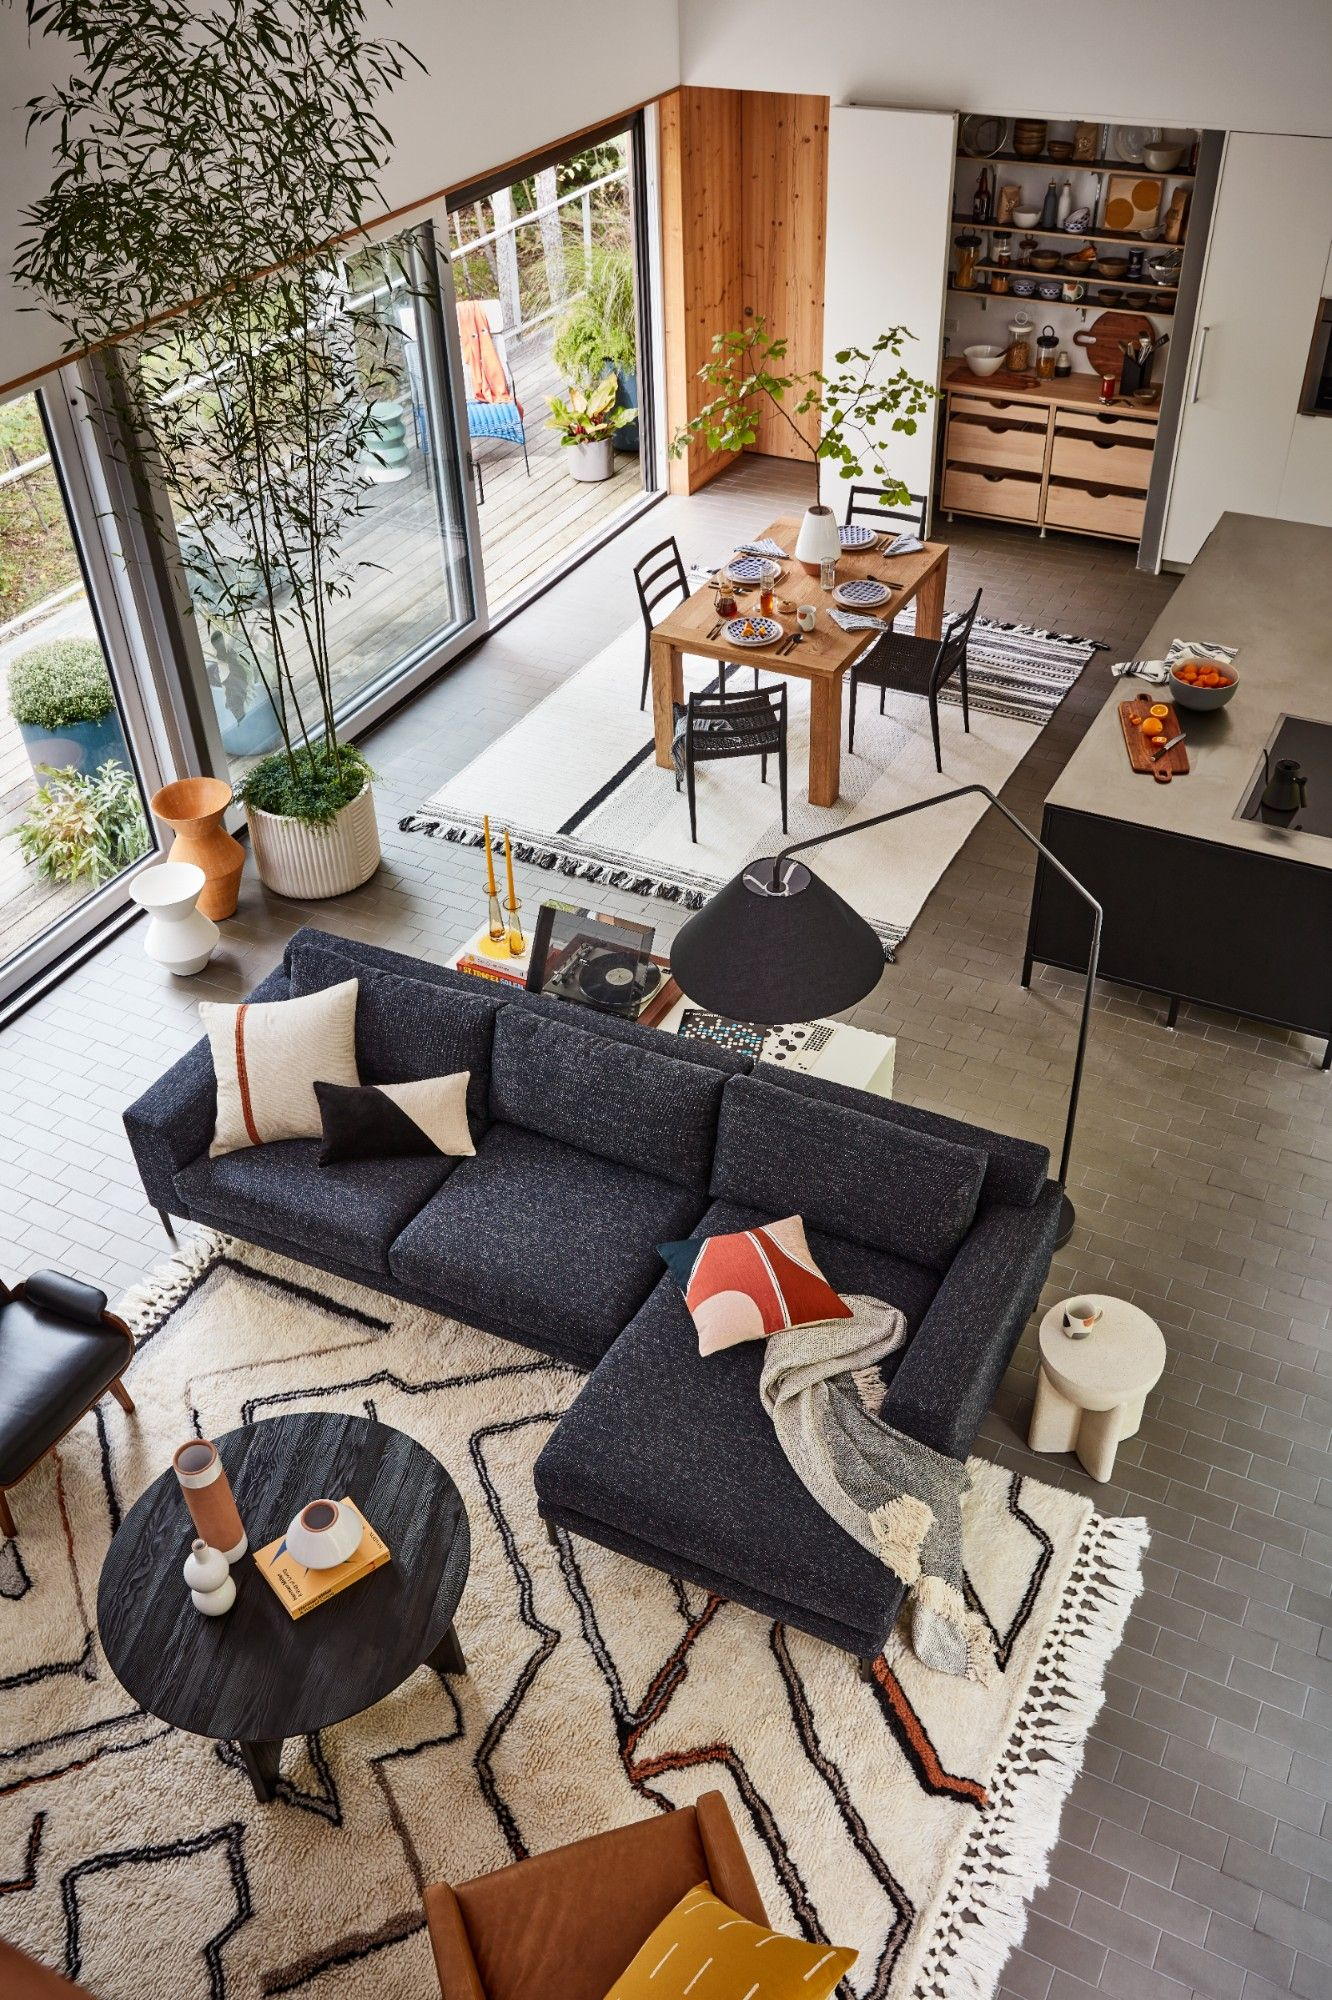 How To Create A Warm, Family-Friendly, Modern Home